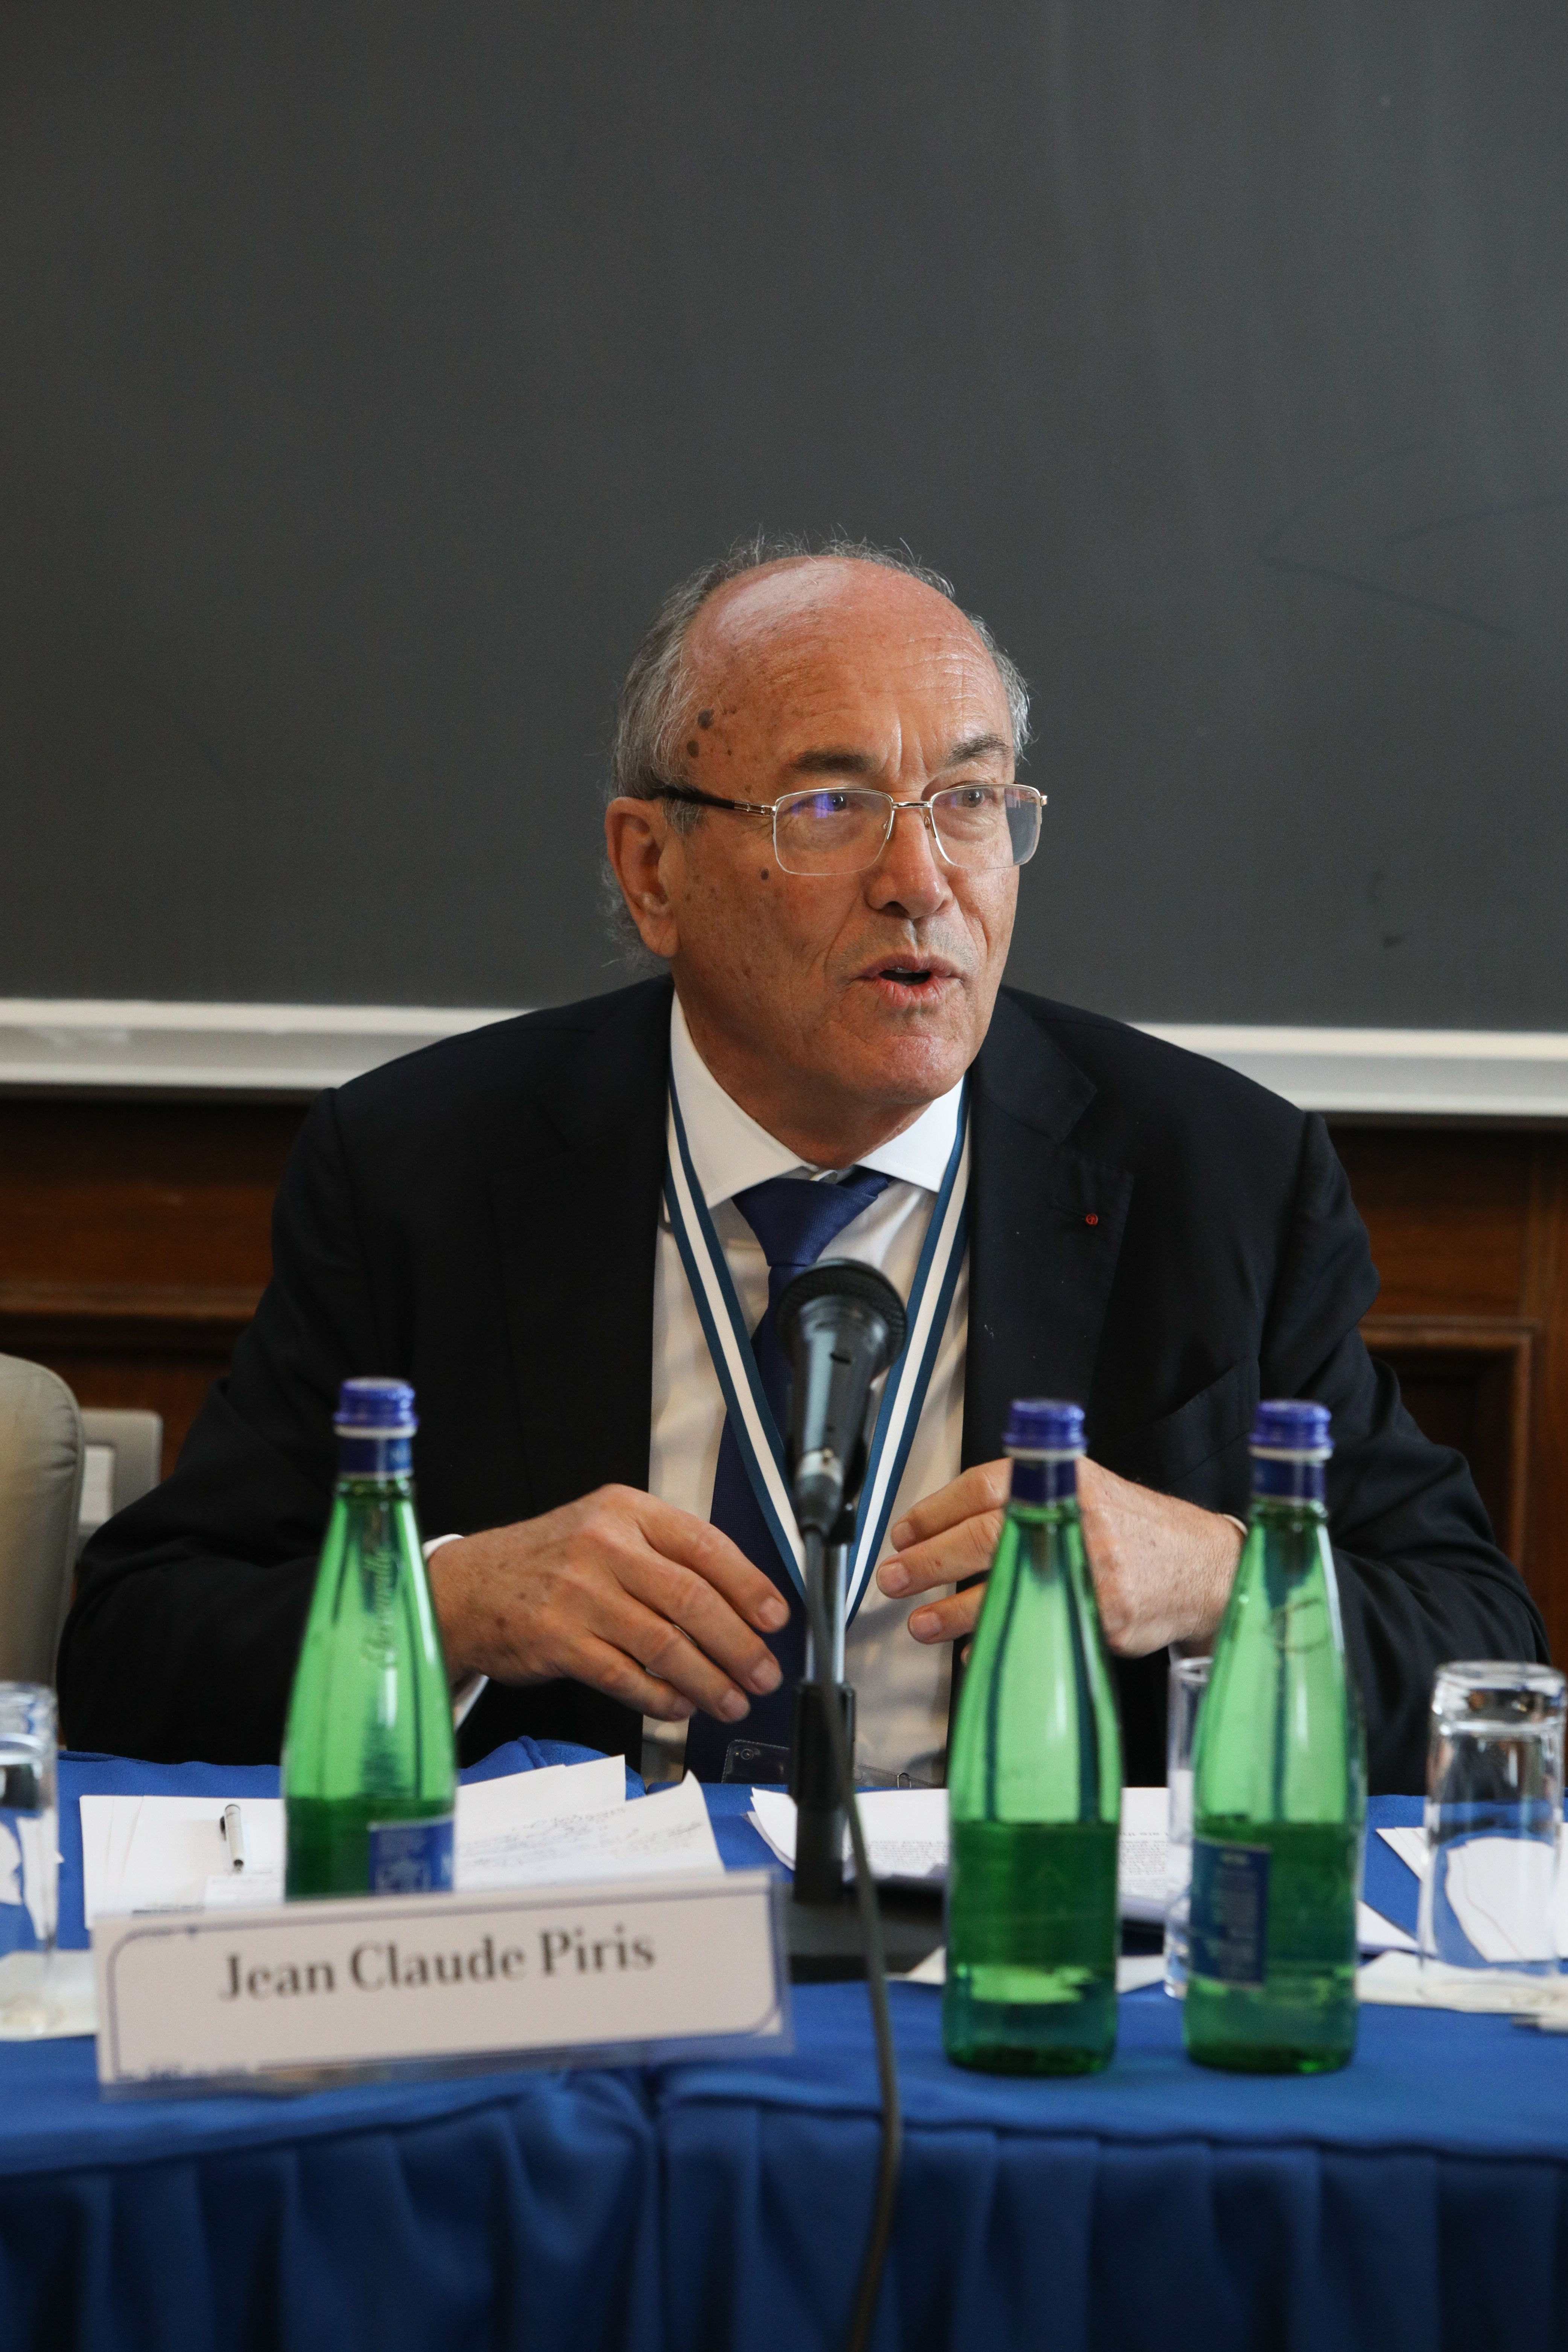 Jean-Claude Piris at the debate on the future of Europe